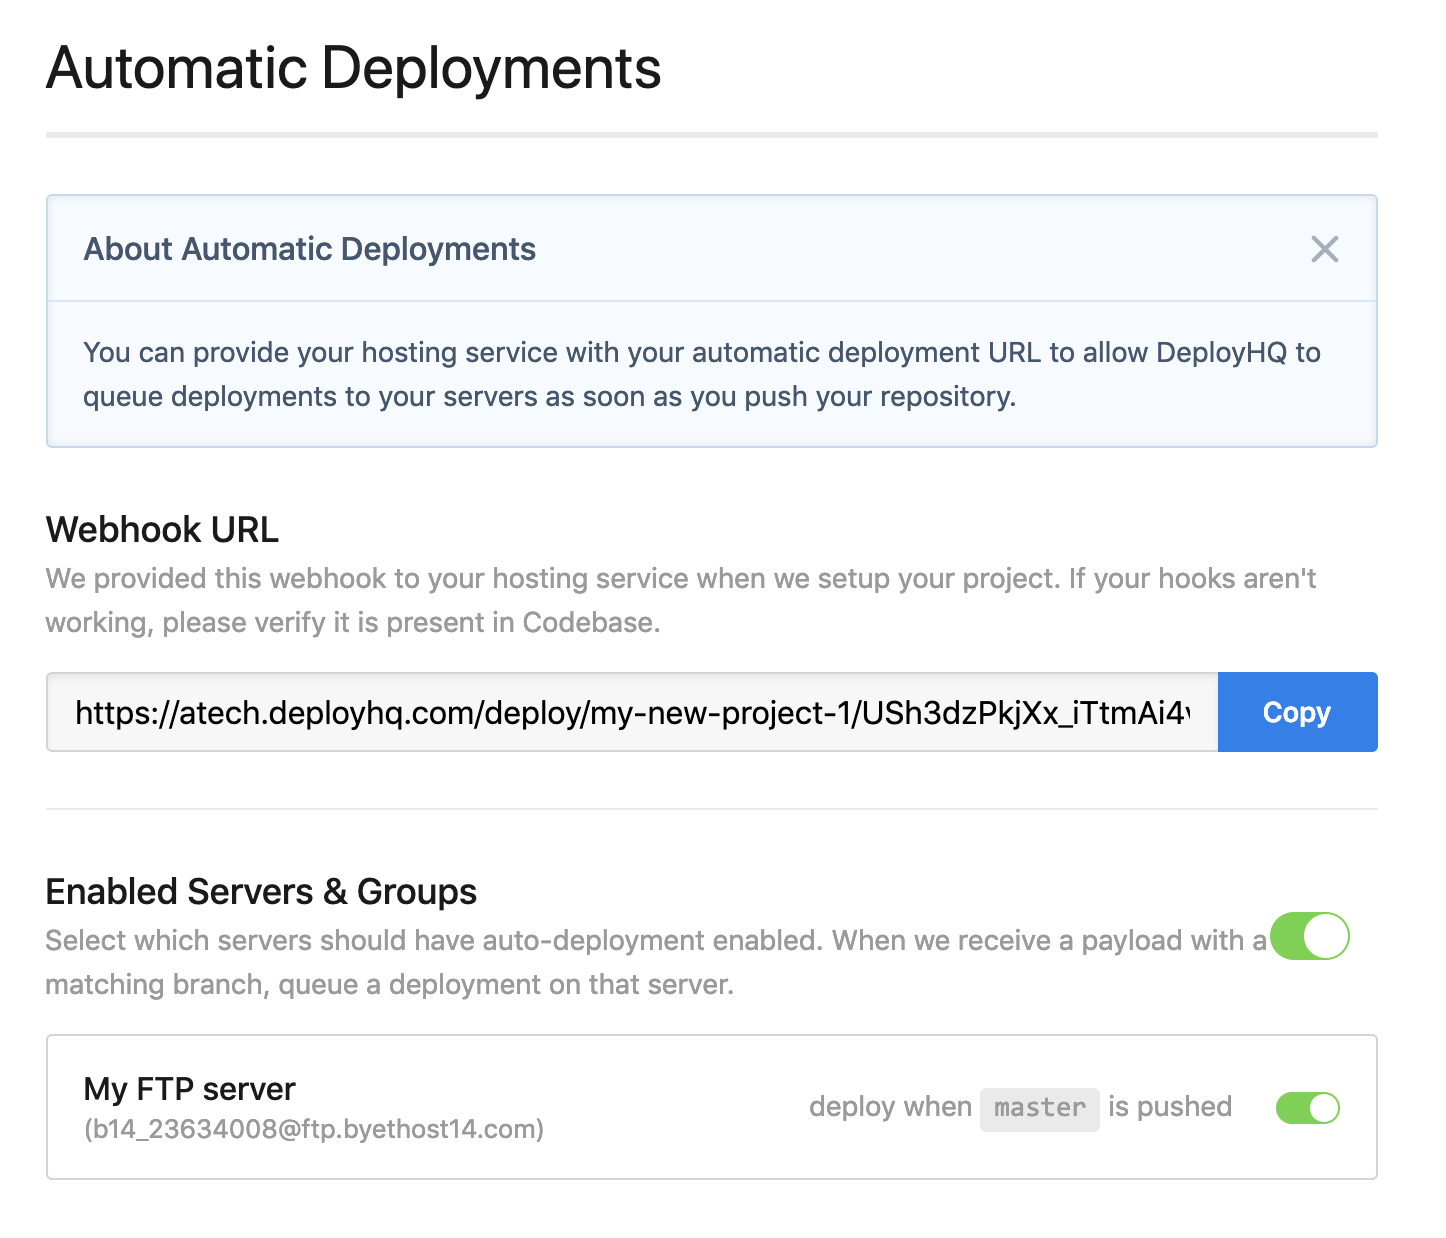 How to deploy to your FTP server with Git and DeployHQ